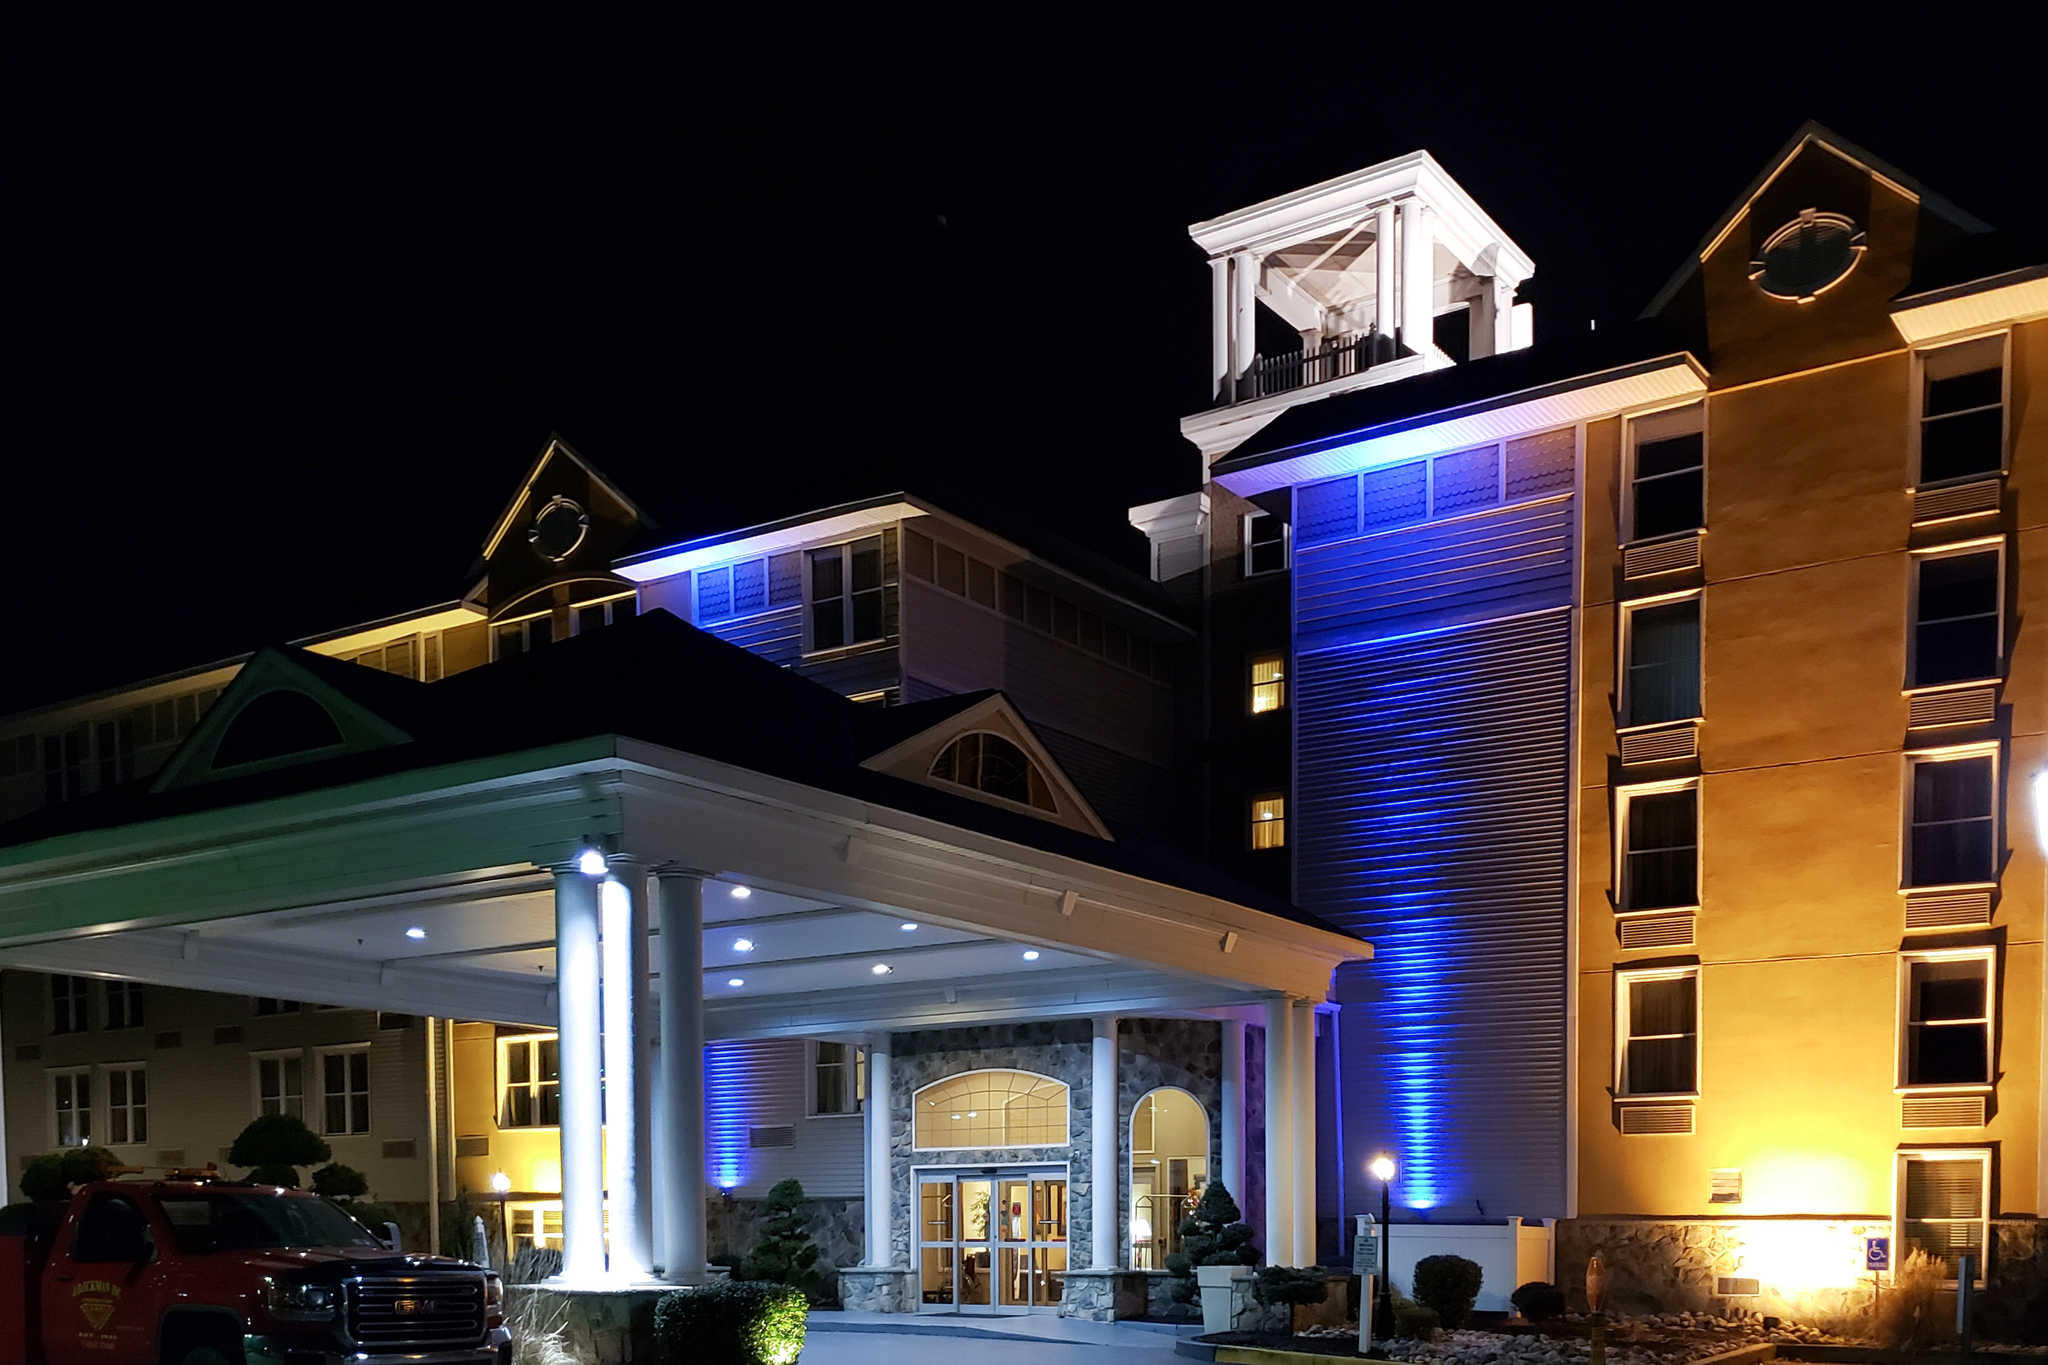 Clarion Hotel image 0